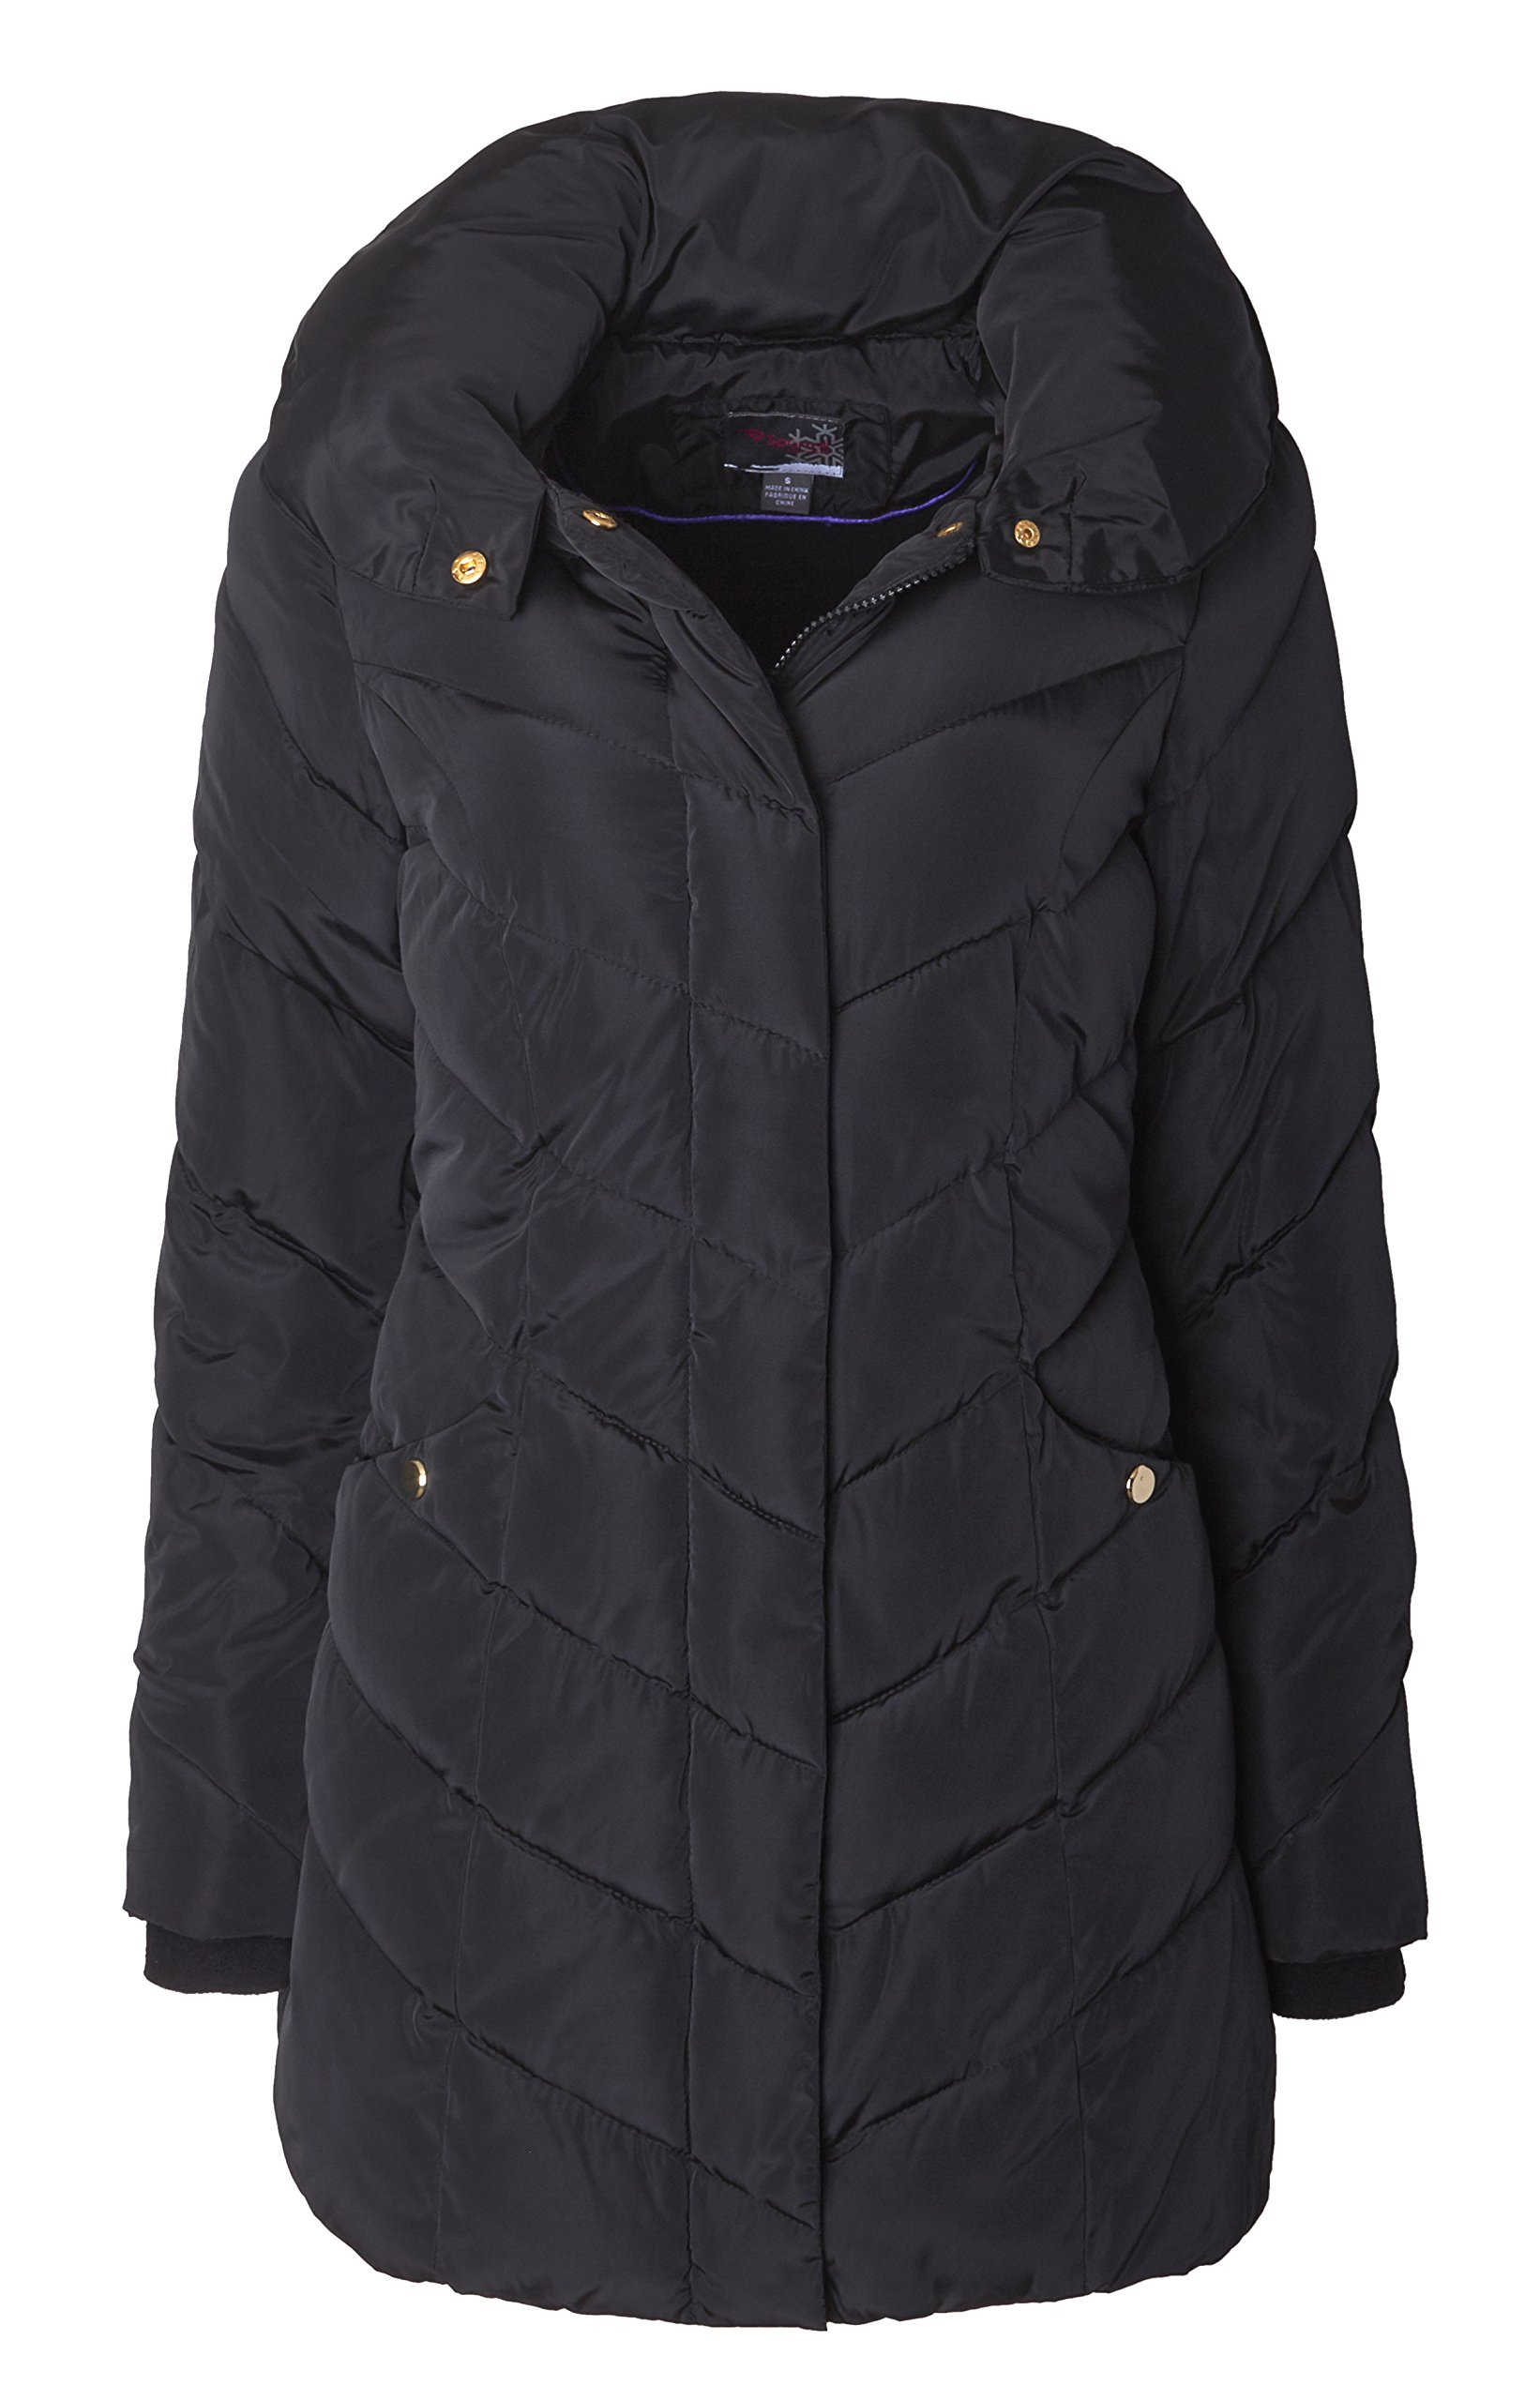 Sportoli Womens Packable Winter Chevron Quilted Fleece Lined Puffer Coat with Hood - Black (Size Medium)